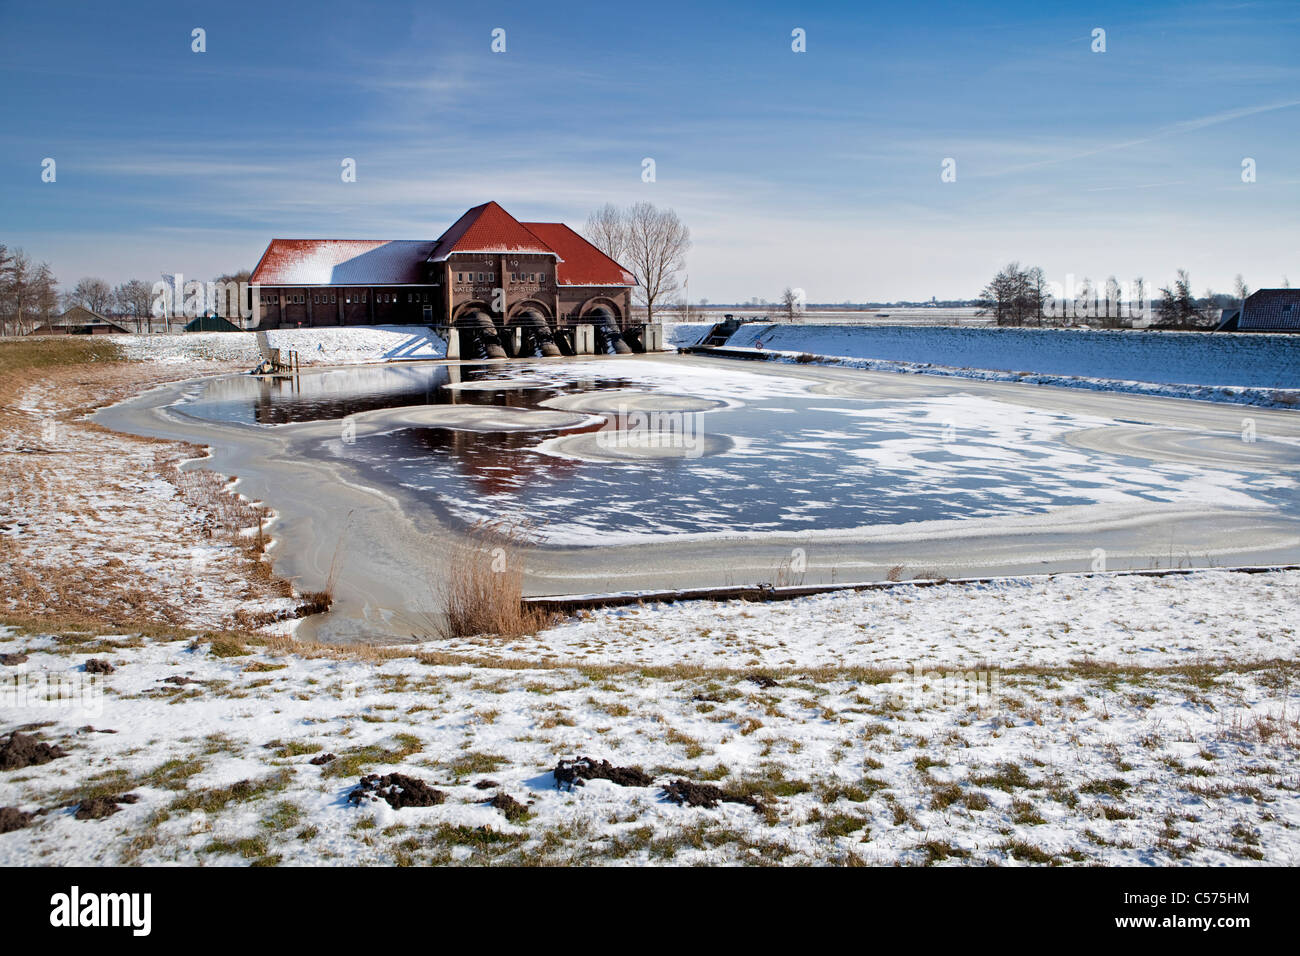 The Netherlands, Vollenhove, Winter, ice. Water pumping-station called A.F.Stroink. - Stock Image